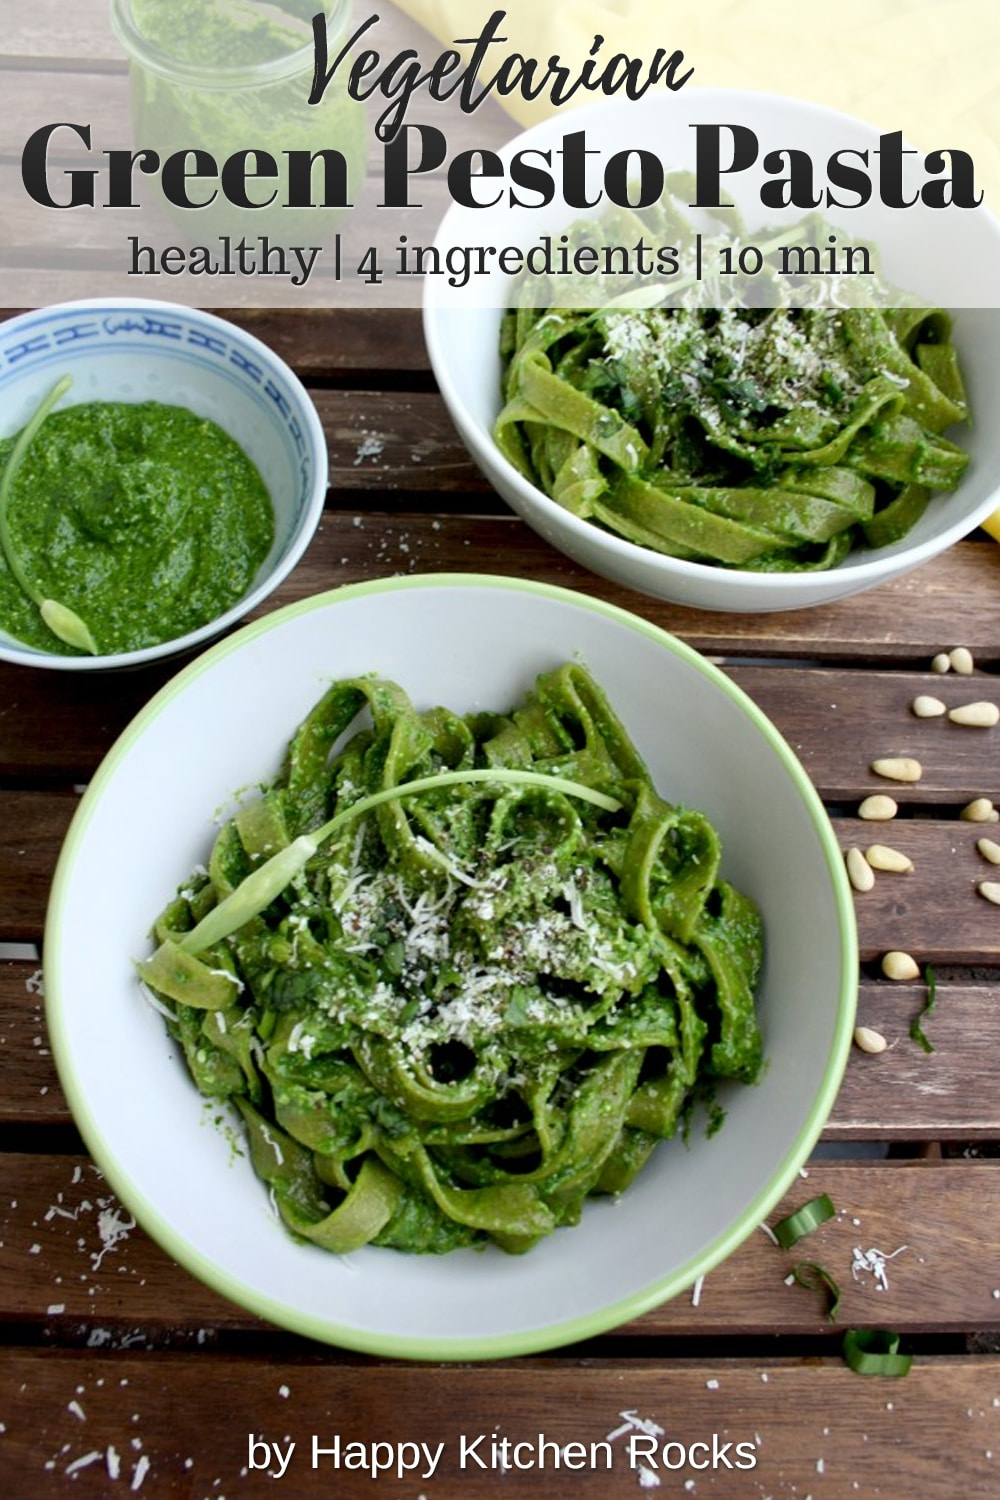 Easy Green Pesto Pasta Collage with Text Overlay